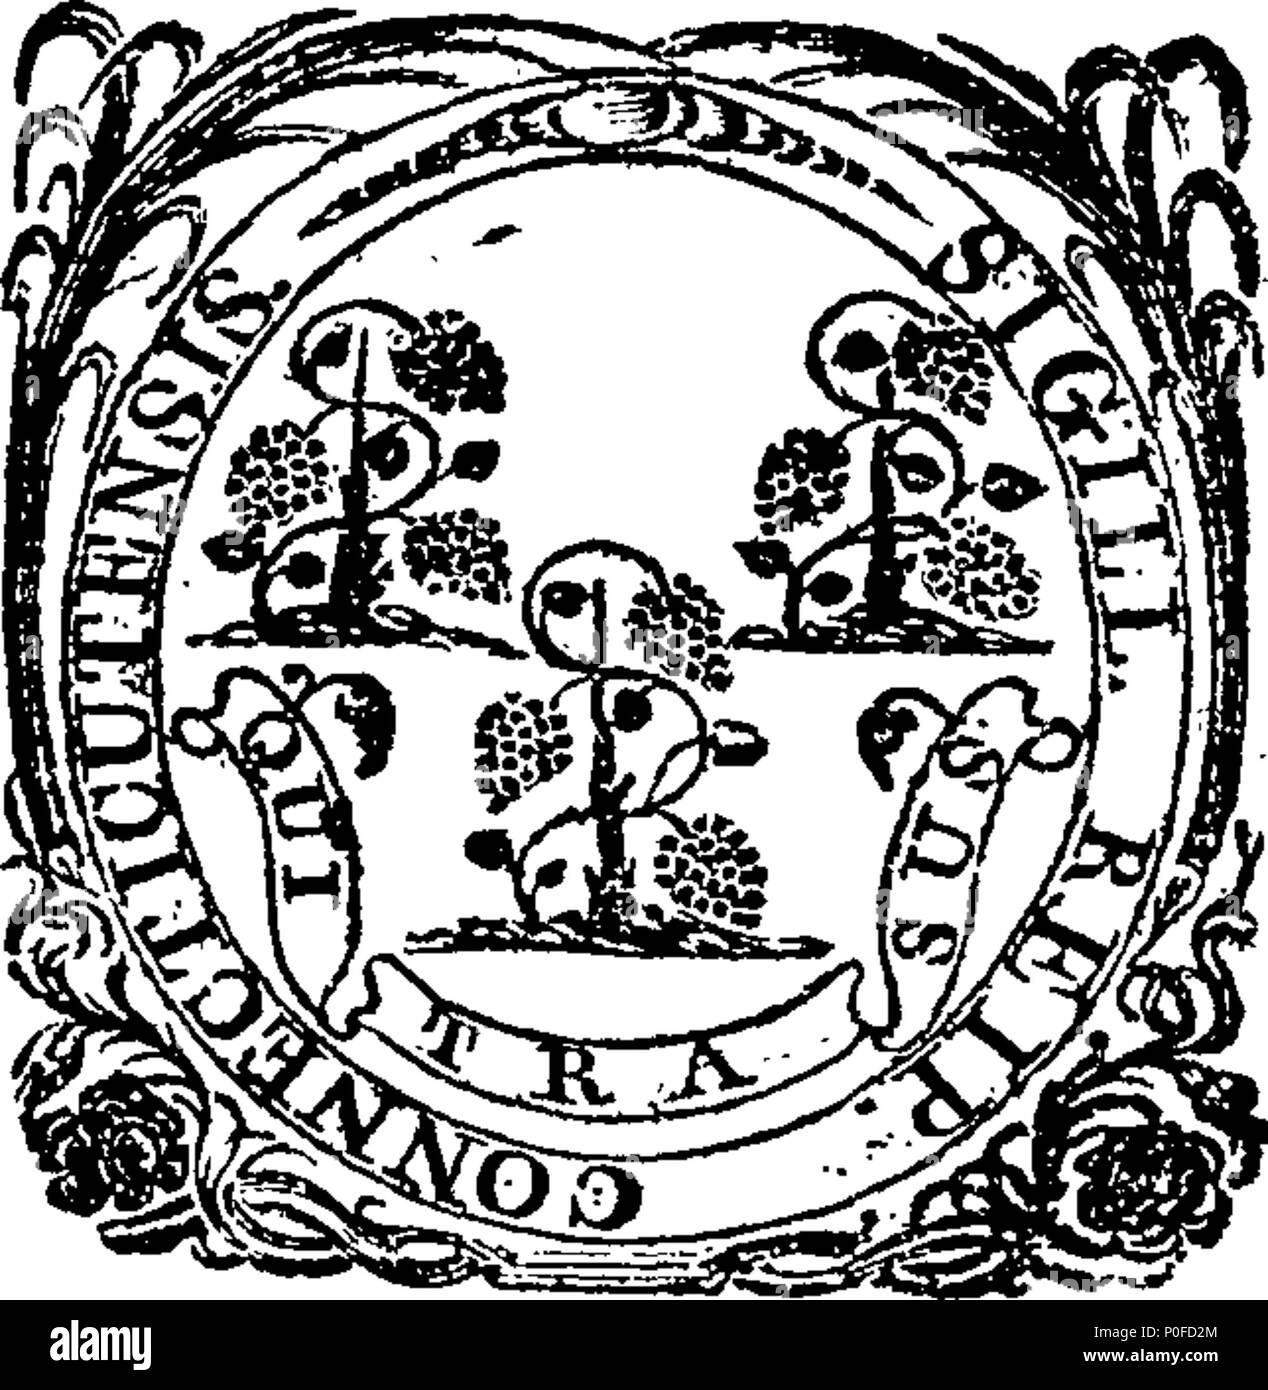 . English: Fleuron from book: Acts and laws of the state of Connecticut, in America. 259 Acts and laws of the state of Connecticut, in America. Fleuron W033320-4 Stock Photo